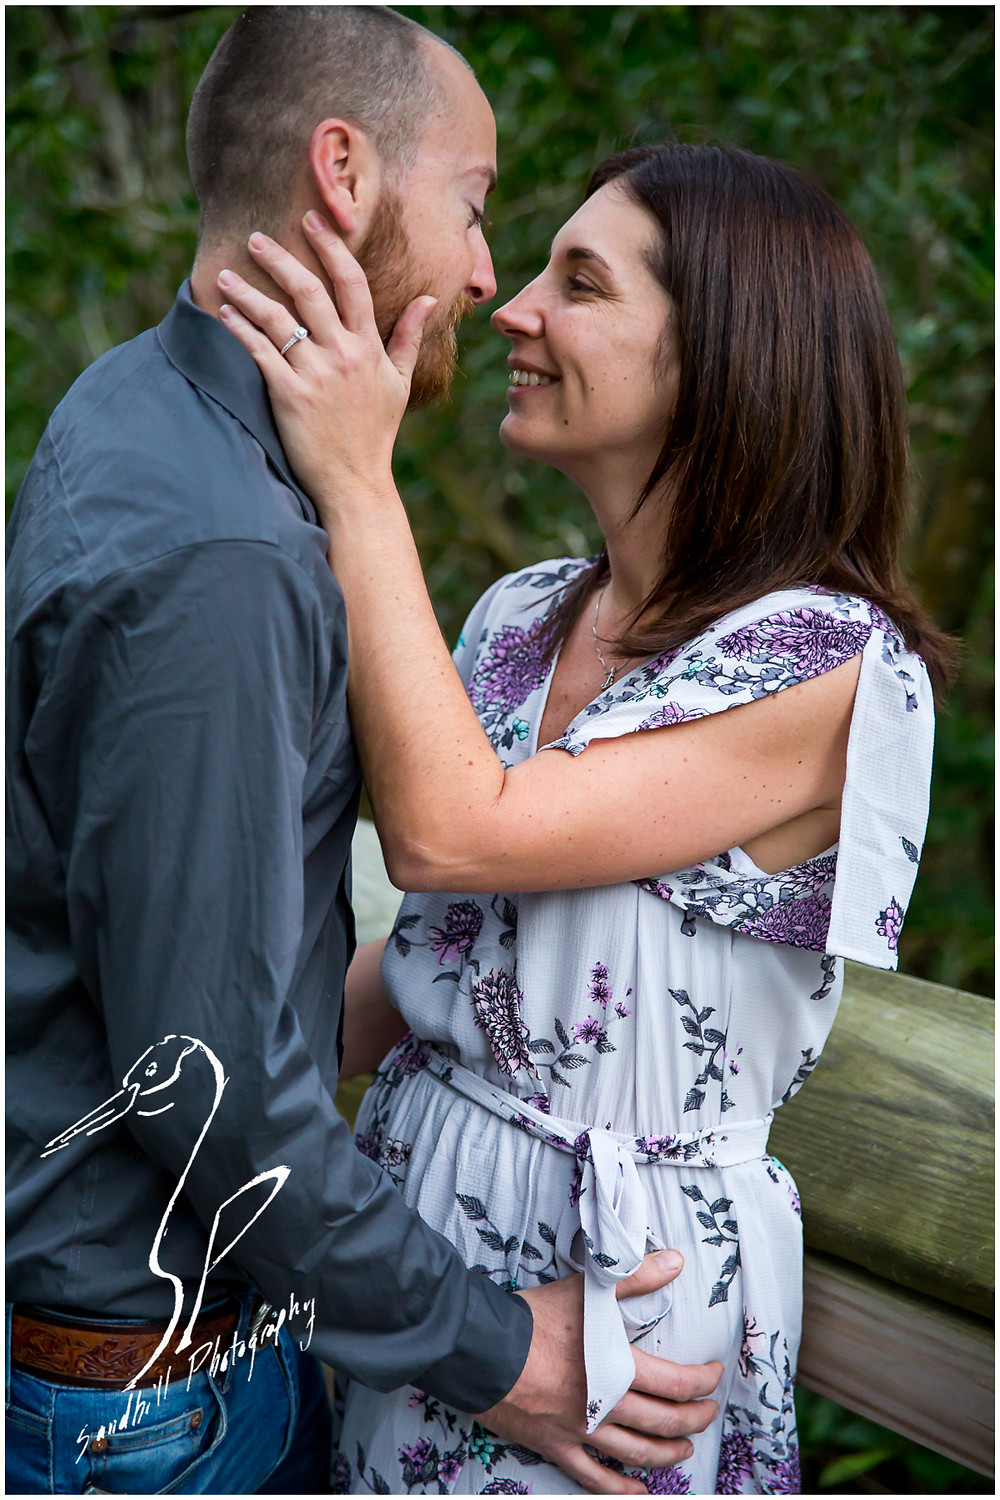 Bradenton Engagement Photographer, portrait of engaged couple tenderly embracing, by Sandhill Photography